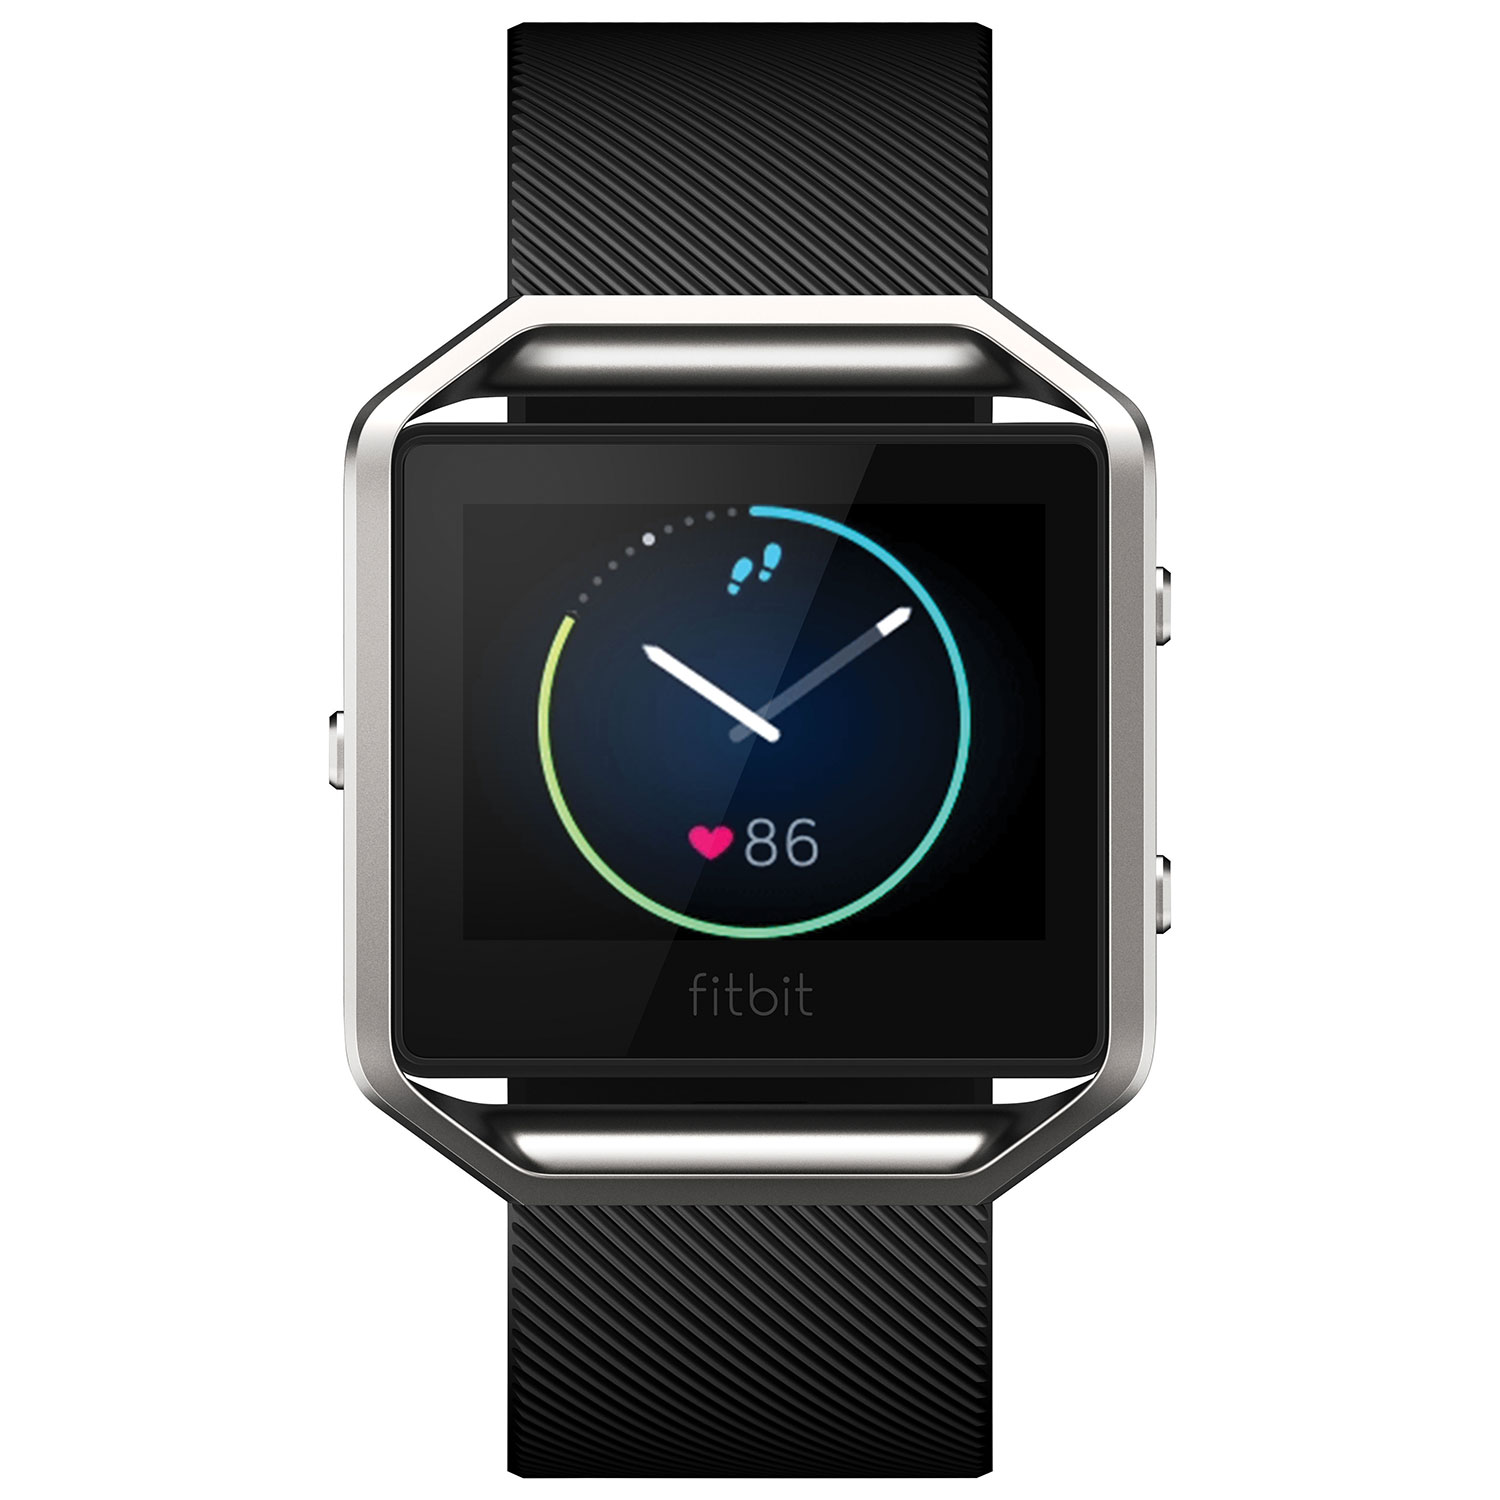 Image result for Fitbit Blaze Small black and silver sports smartwatch